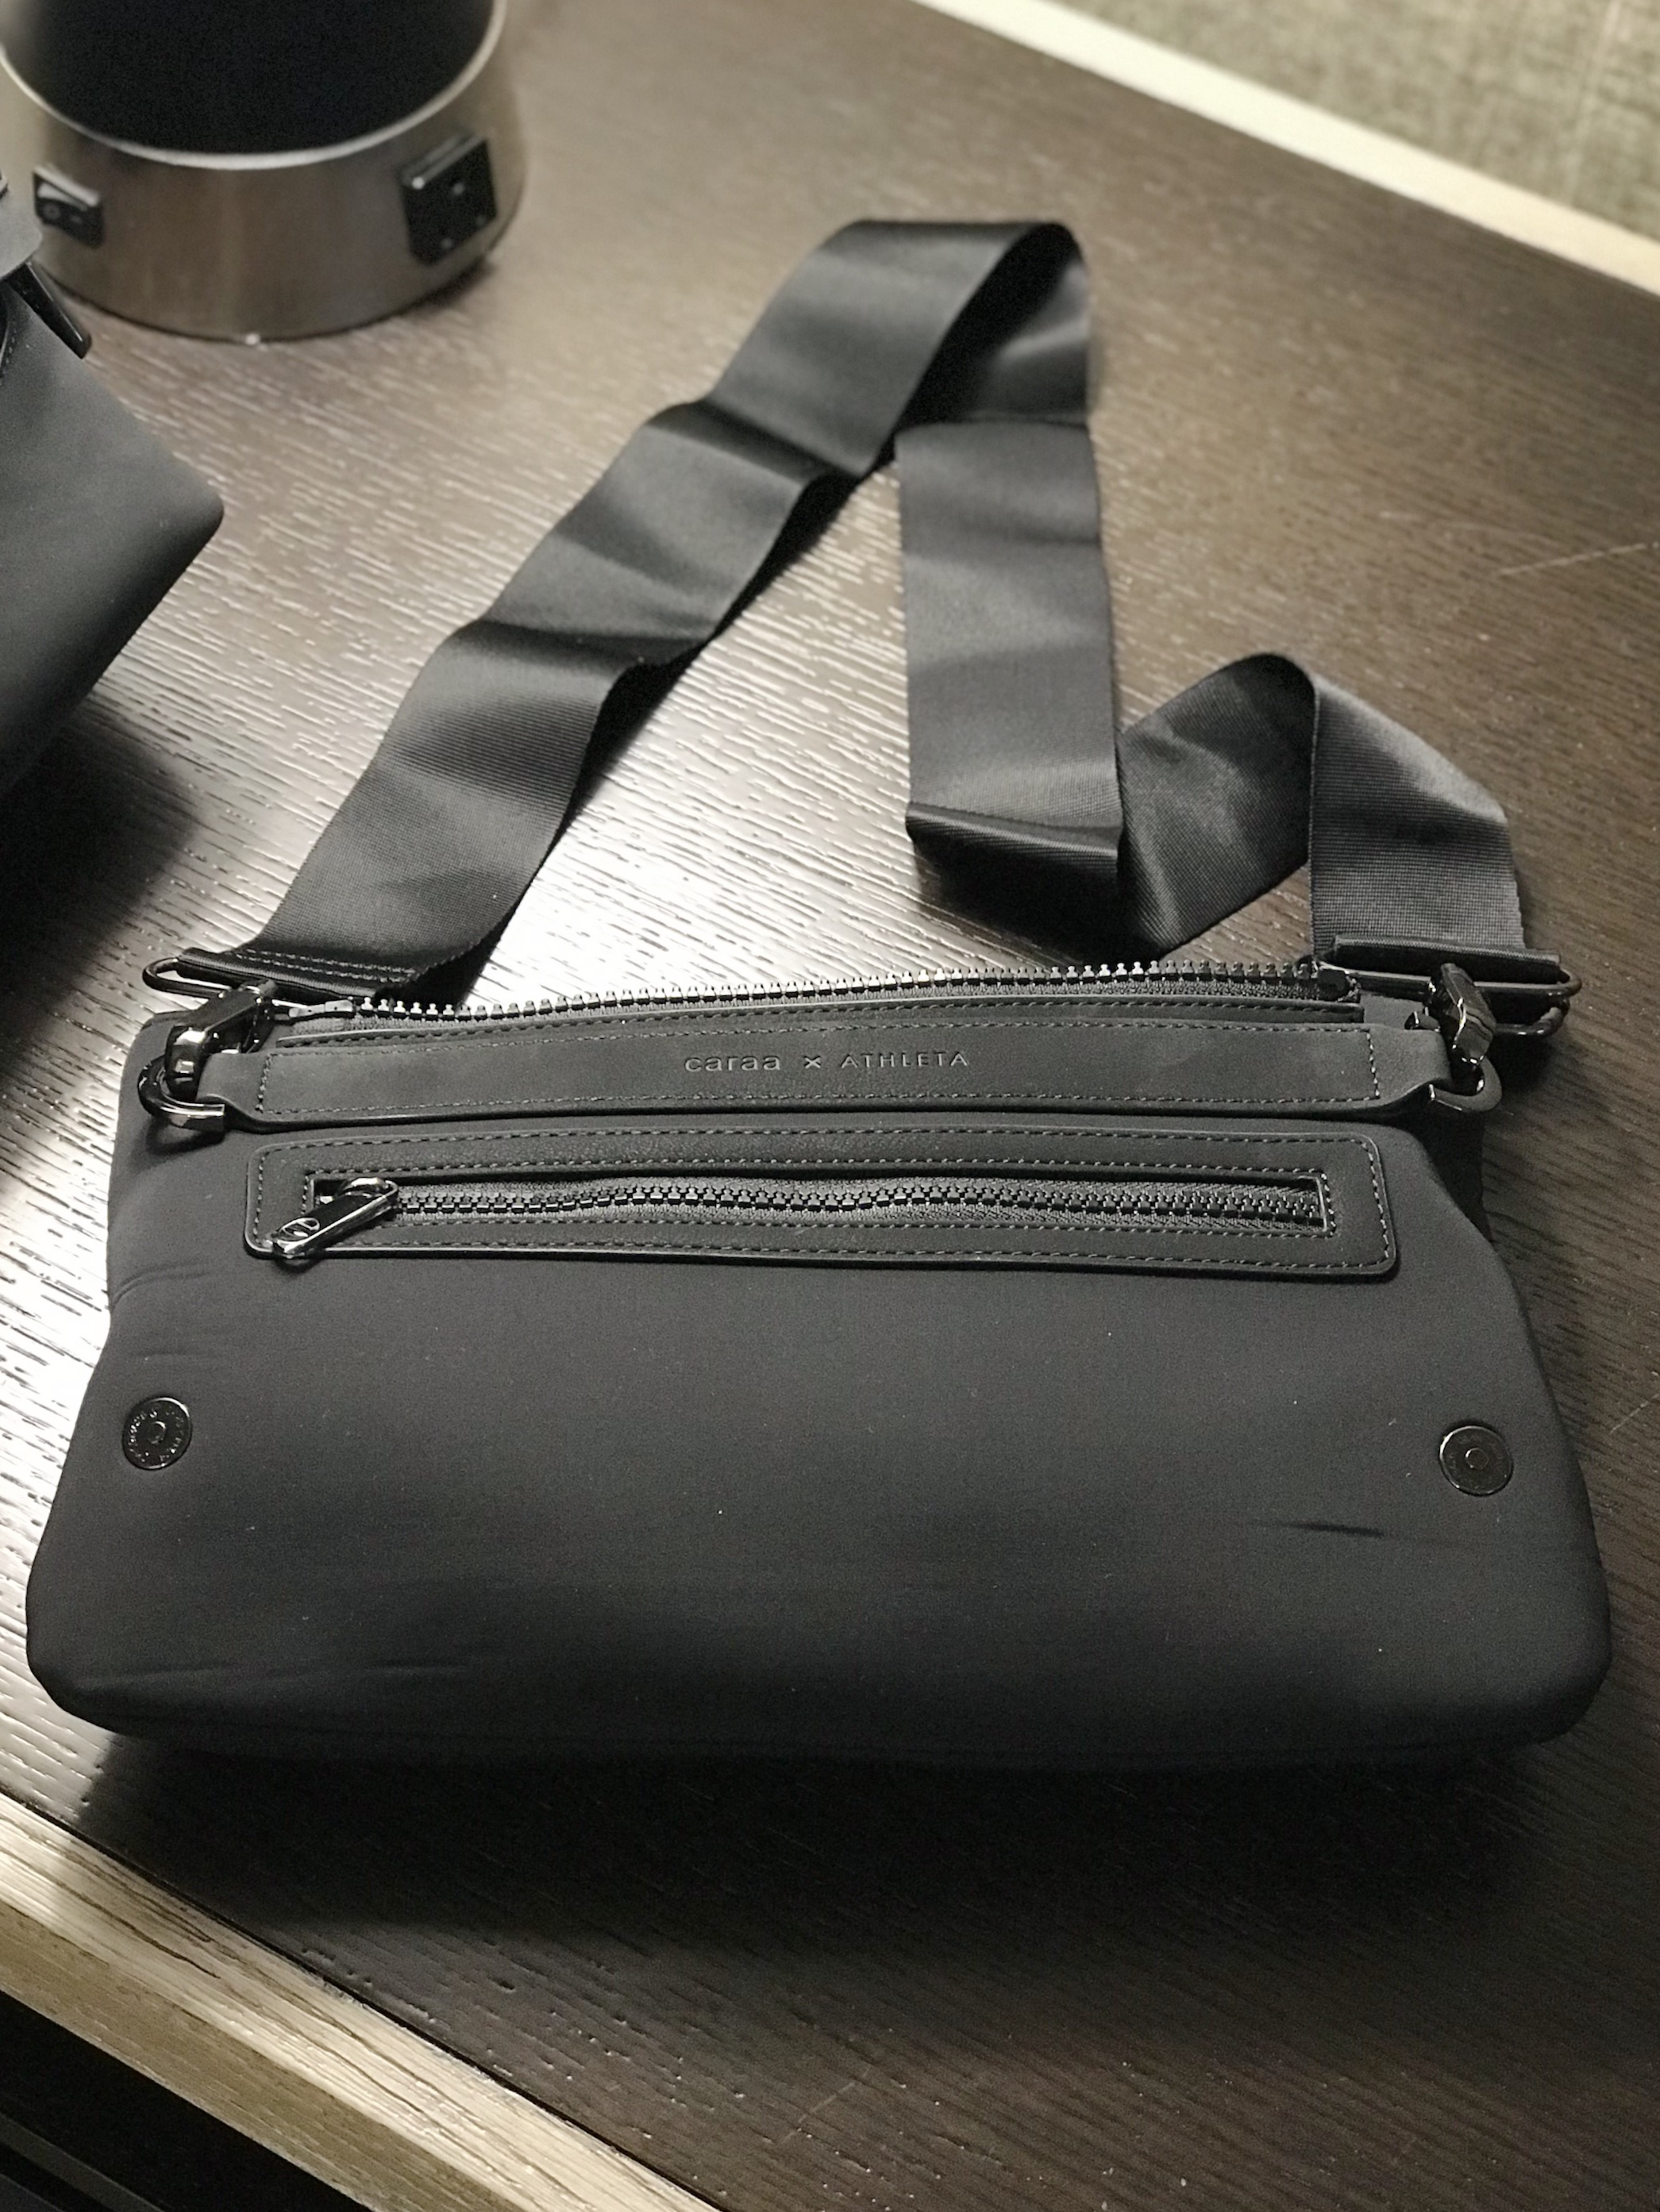 The zip-off pouch comes with a strap to make it a waist bag or a crossbody.